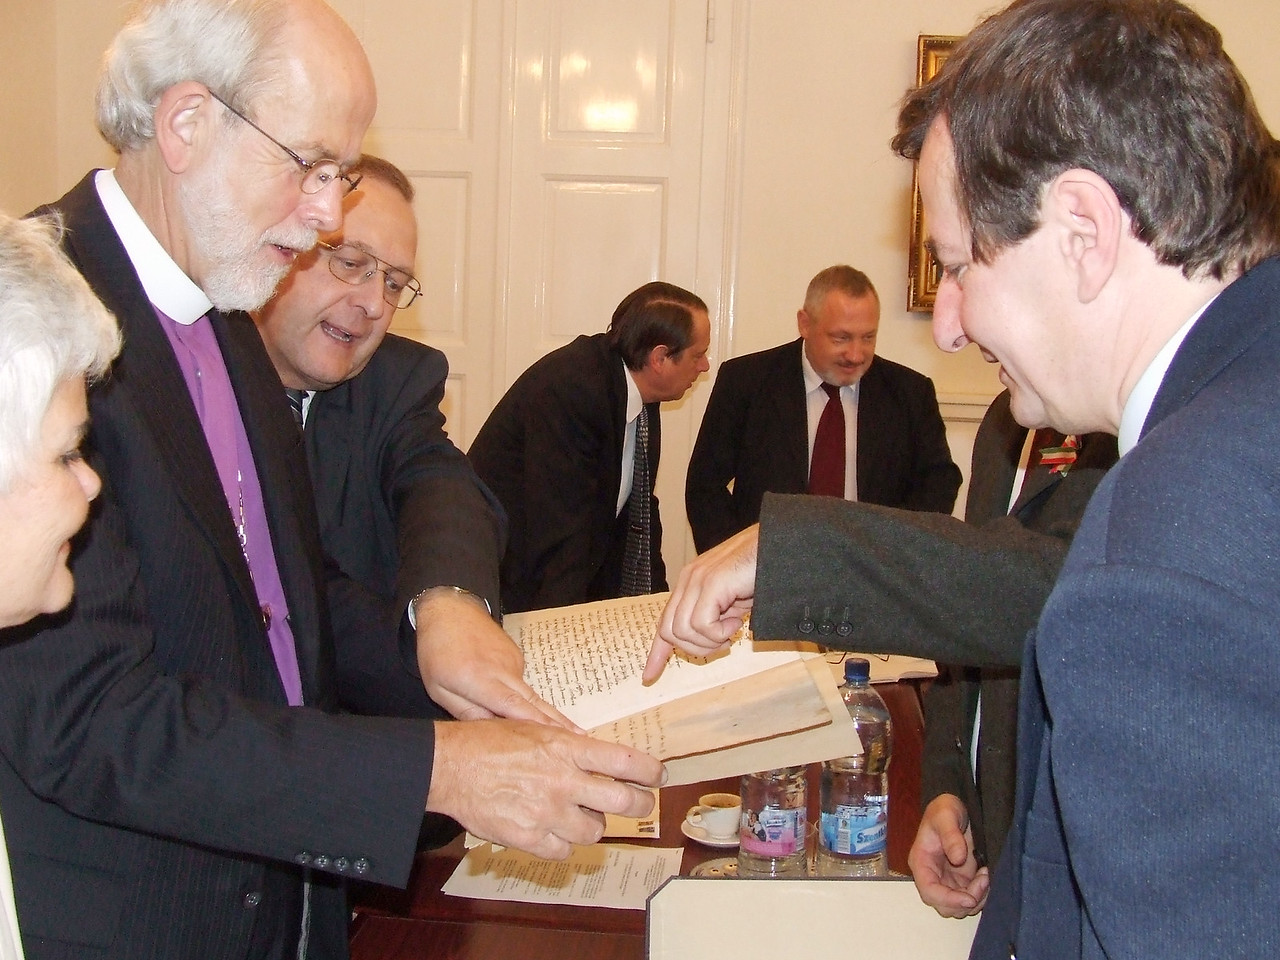 LWF President and ELCA Presiding Bishop Mark S. Hanson views the original copy of the Last Will and Testament of Martin Luther during his visit to Budapest, Hungary on Oct. 26.  The document was given as a gift to the Lutheran Church in Hungary in the early 1800s.  With Hanson are, from left, Ione Hanson, Bishop János Ittzés, interim presiding bishop of the Evangelical Lutheran Church in Hungary, and Dr. Péter Szentpétery, senior lecturer, Lutheran Theological University, Budapest.